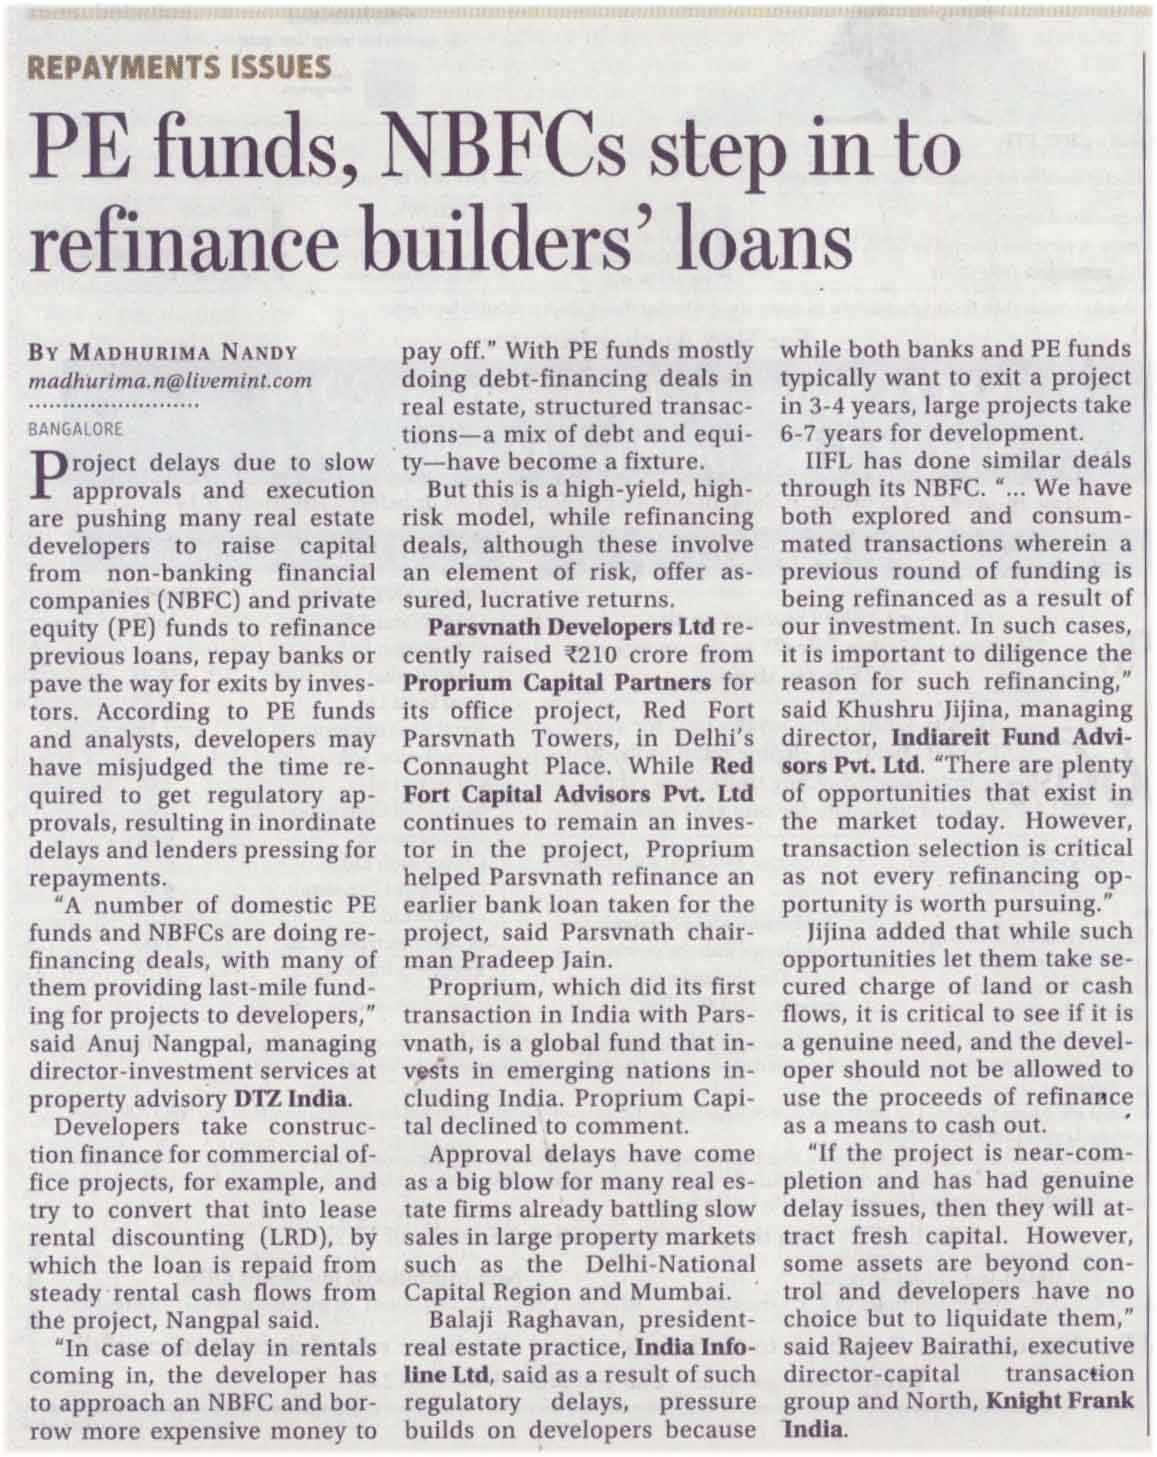 PE funds, NBFCs step in to refinance builders' loans